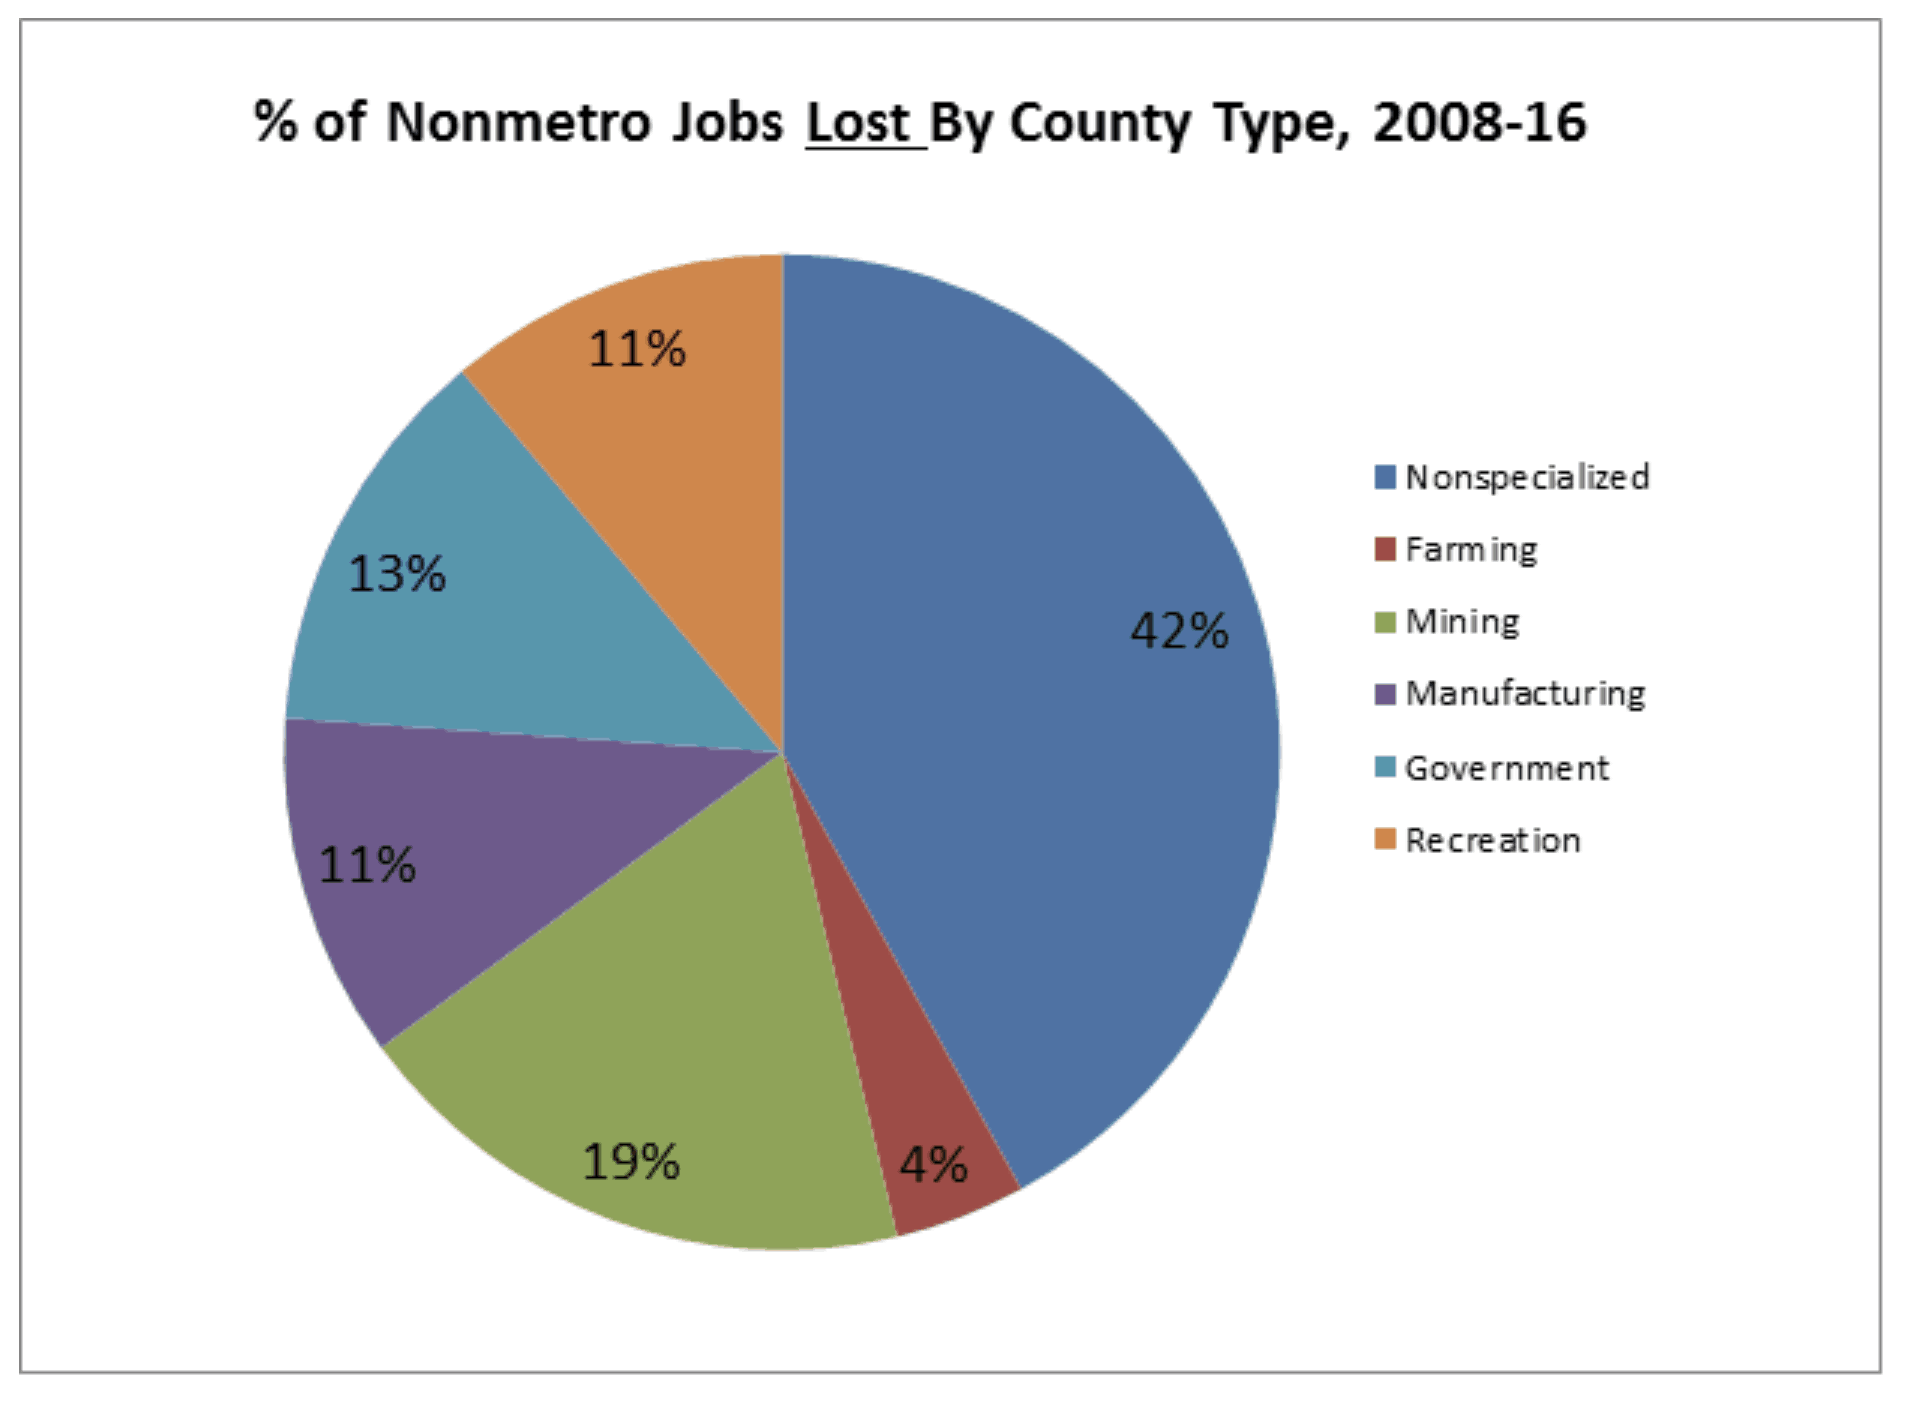 nonmetro jobs lost by county type